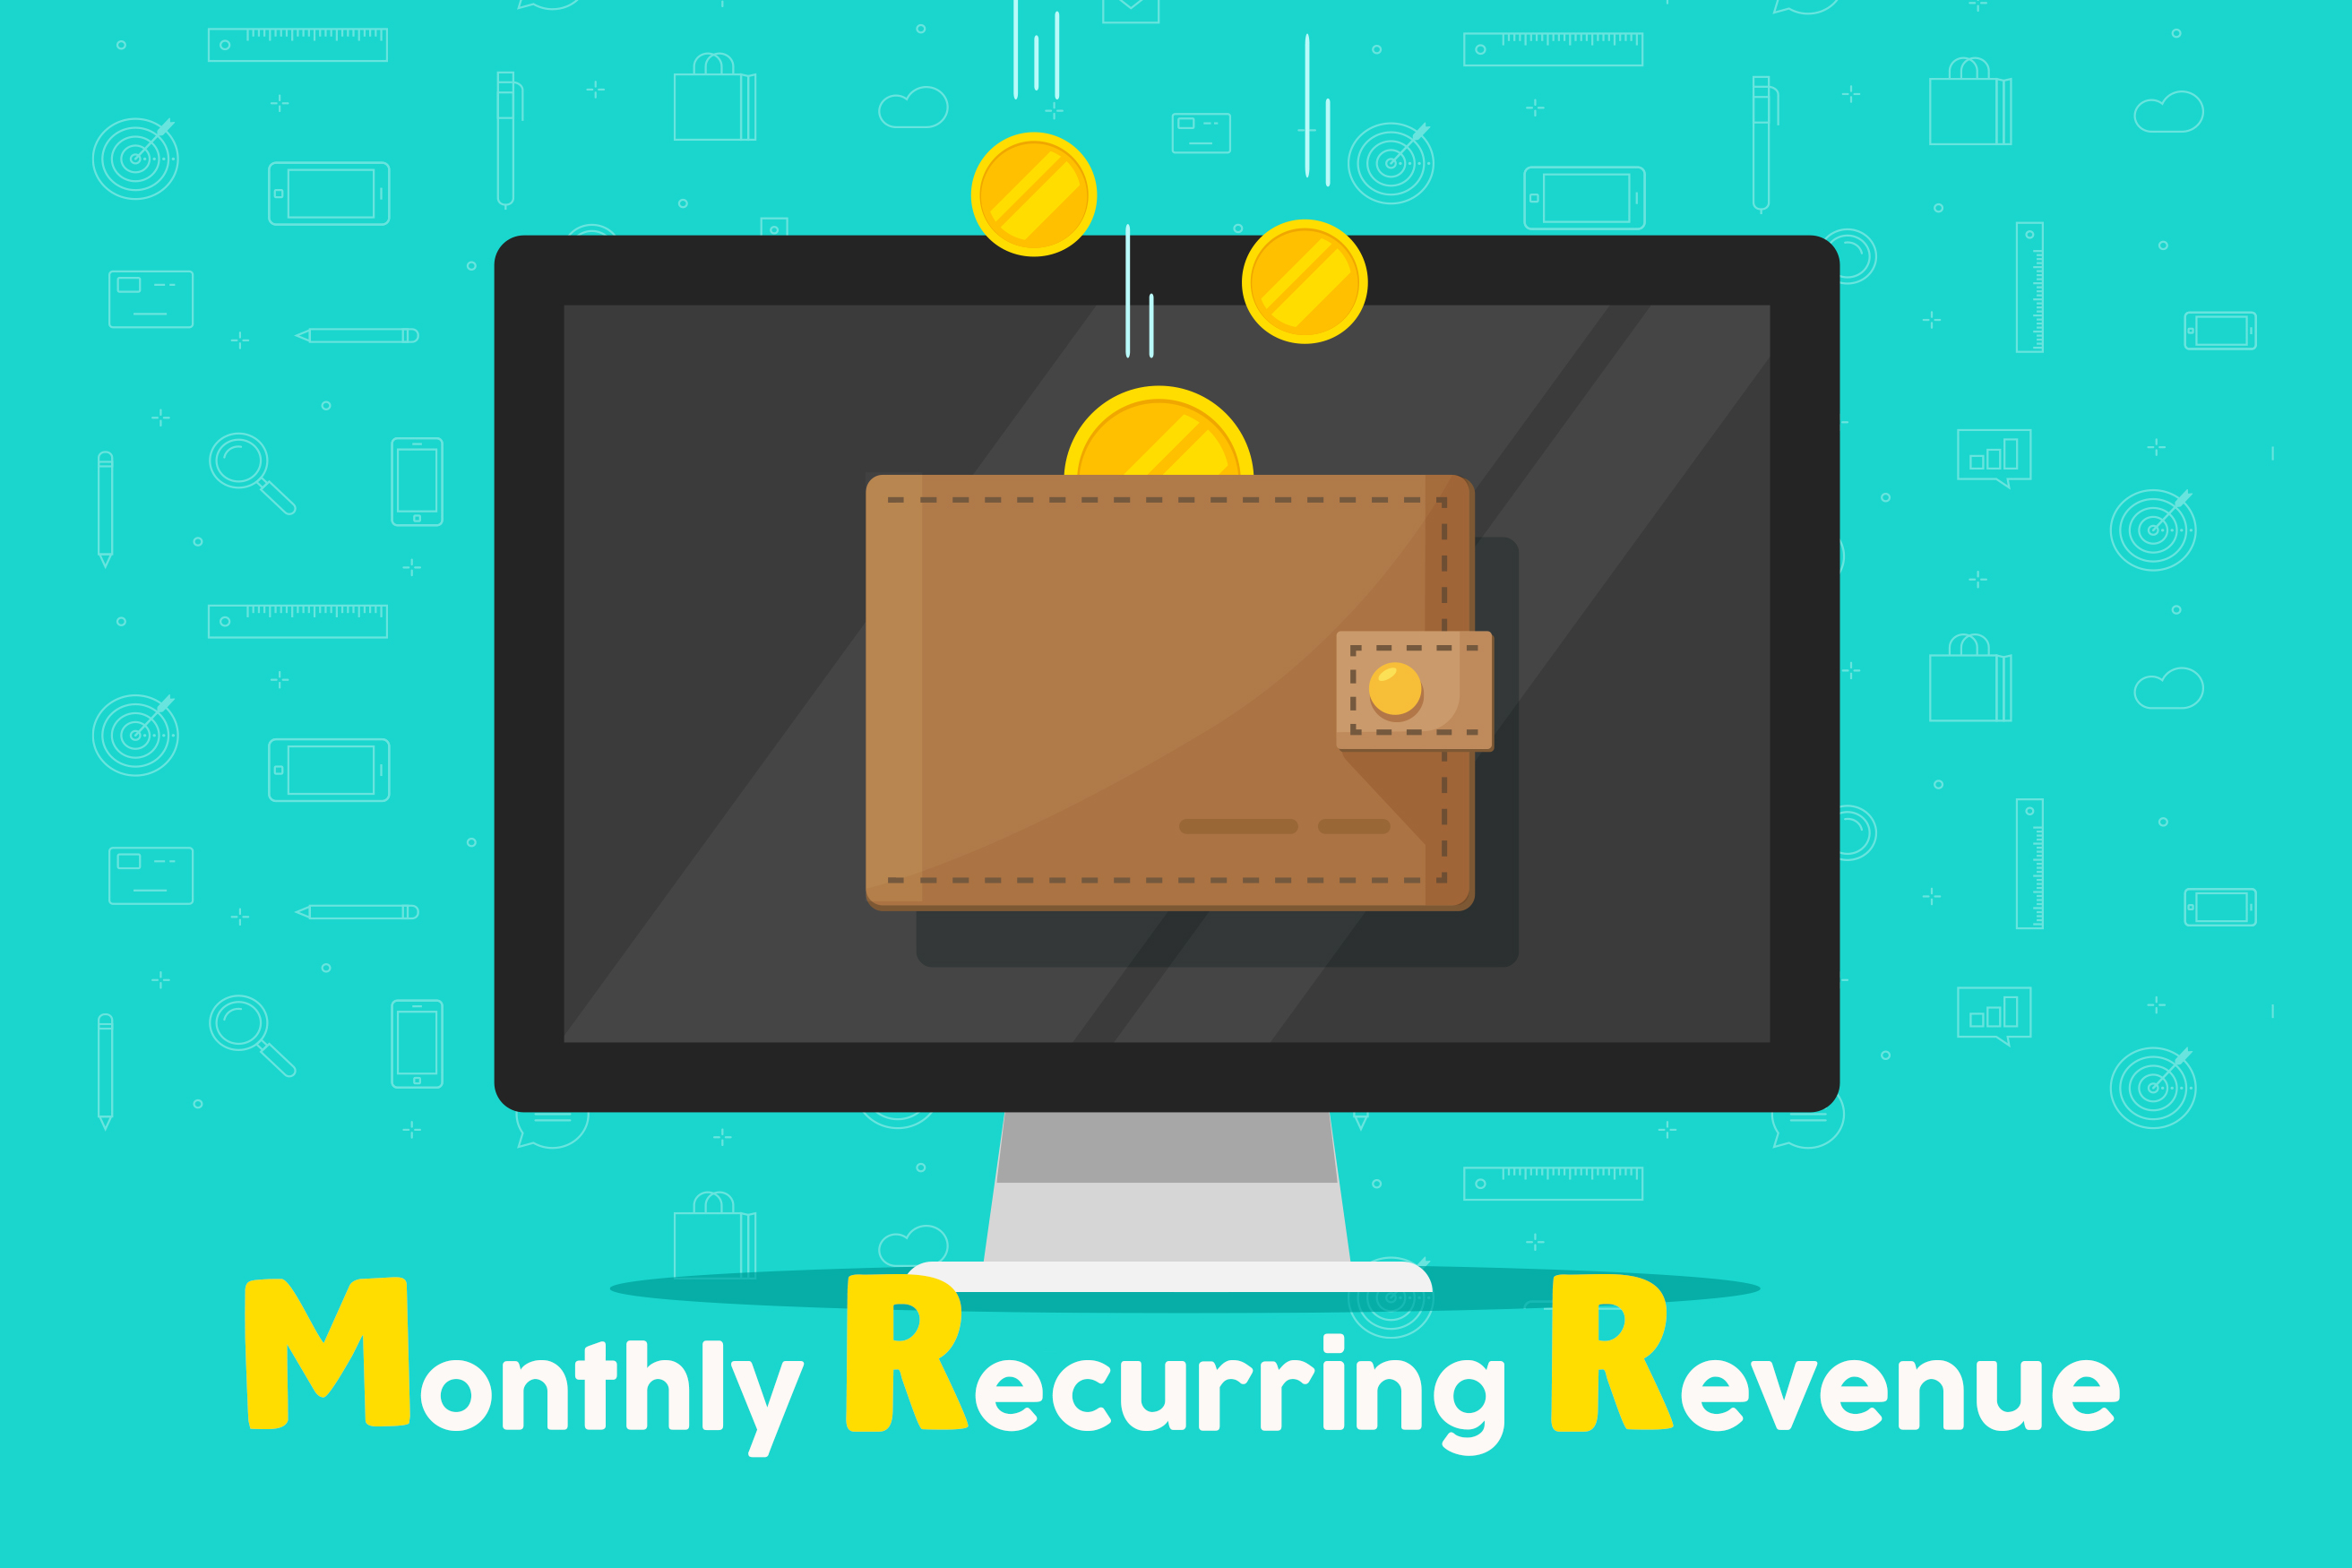 Monthly Recurring Revenue, a key business metric for SaaS businesses